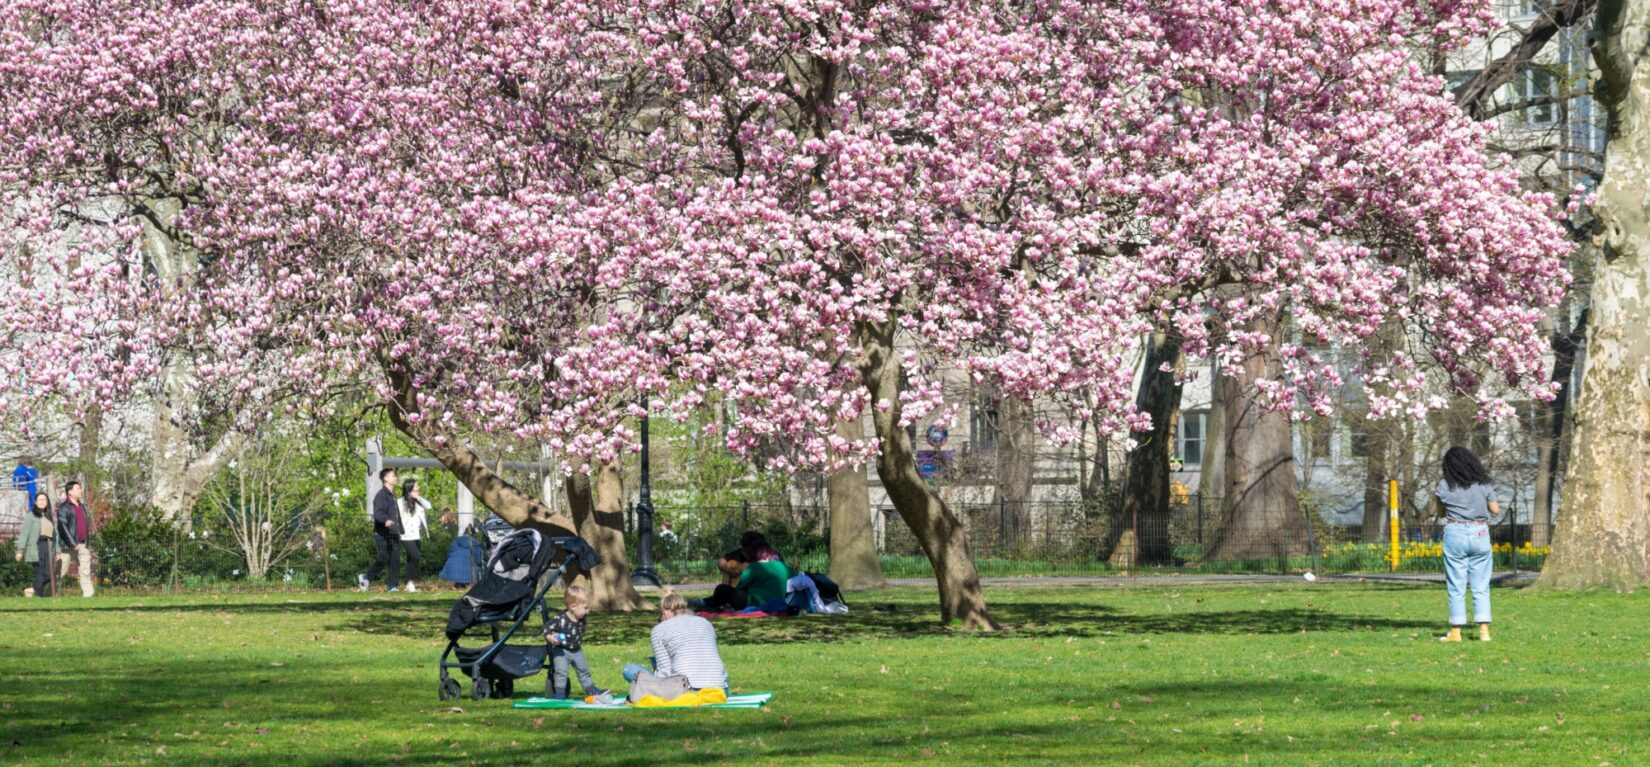 Visitors enjoy sitting under a canopy of blossoming cherry trees on the East Green